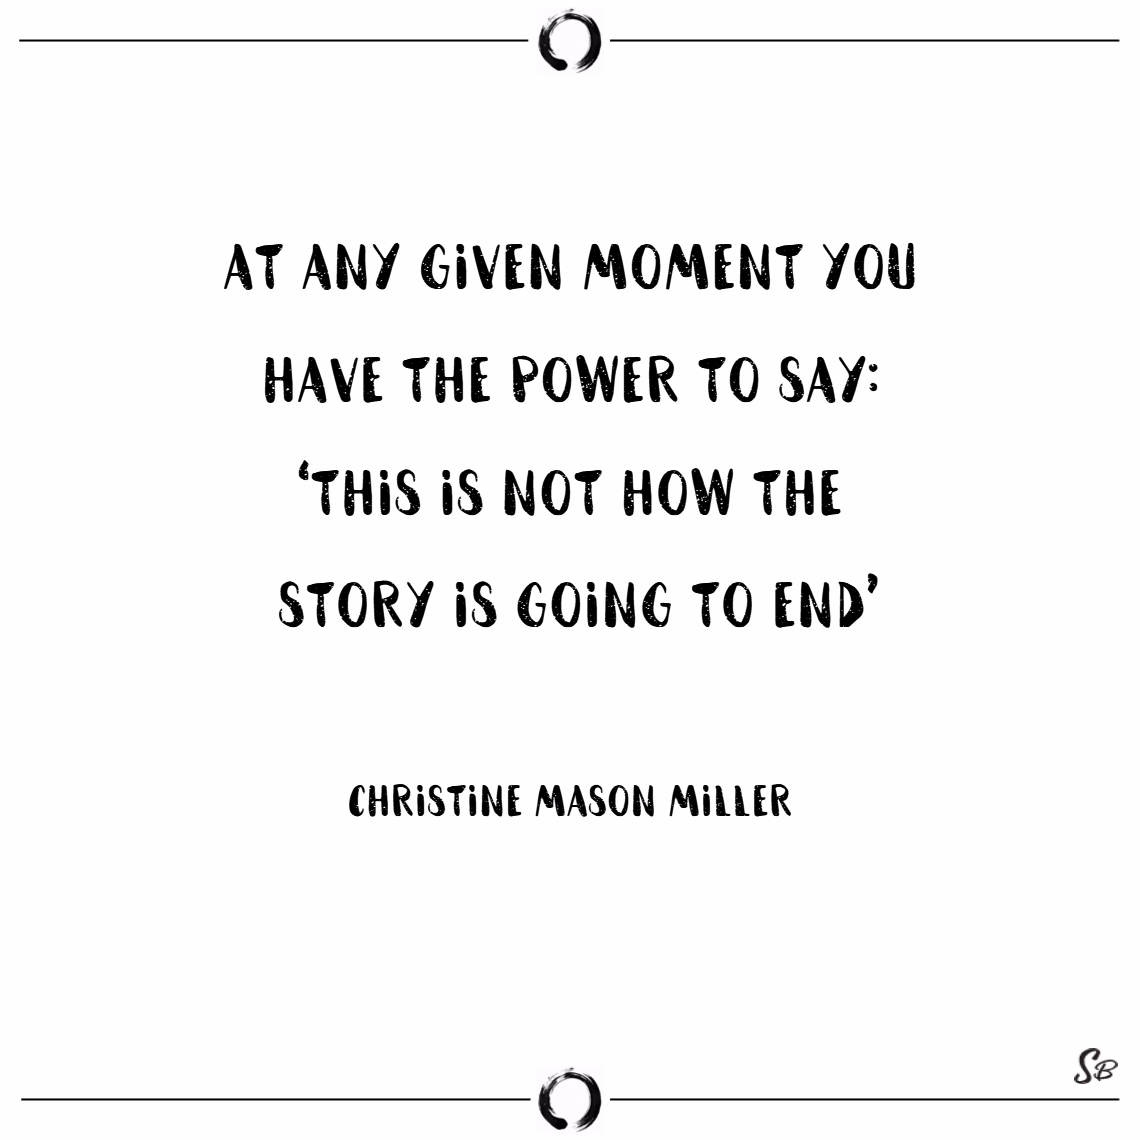 At any given moment you have the power to say 'this is not how the story is going to end'. – christine mason miller